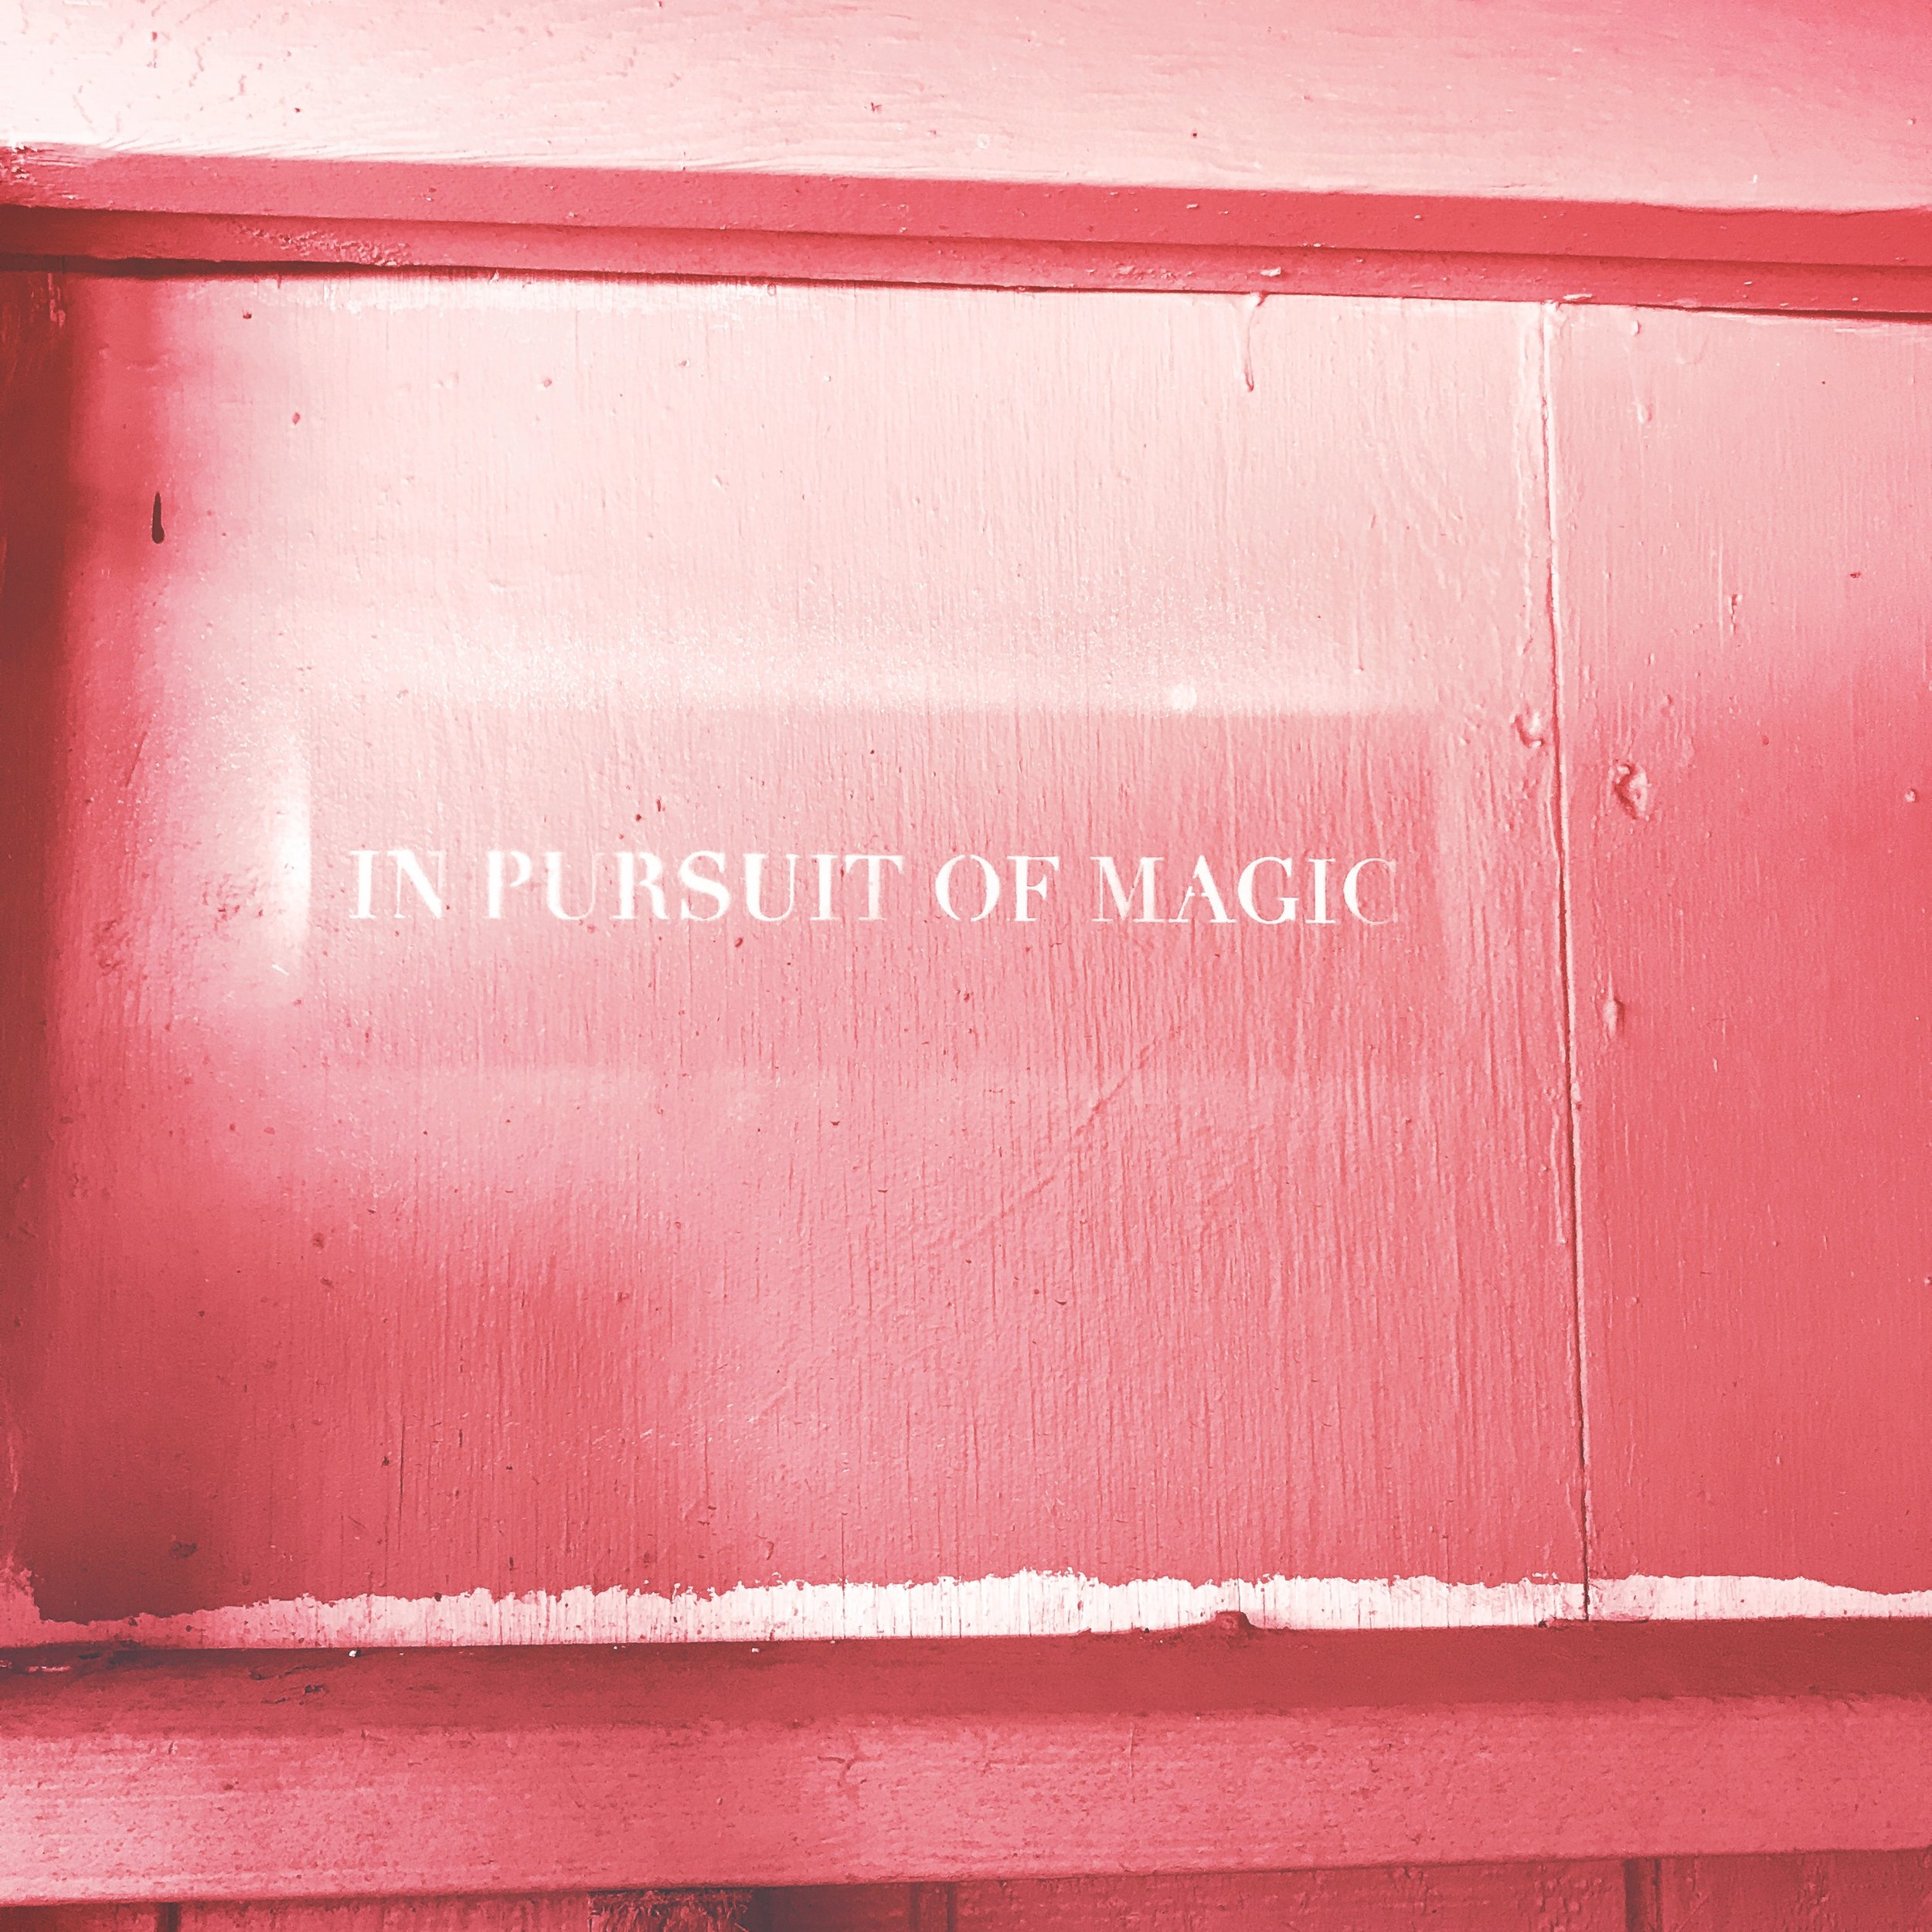 pursuit of magic.jpg